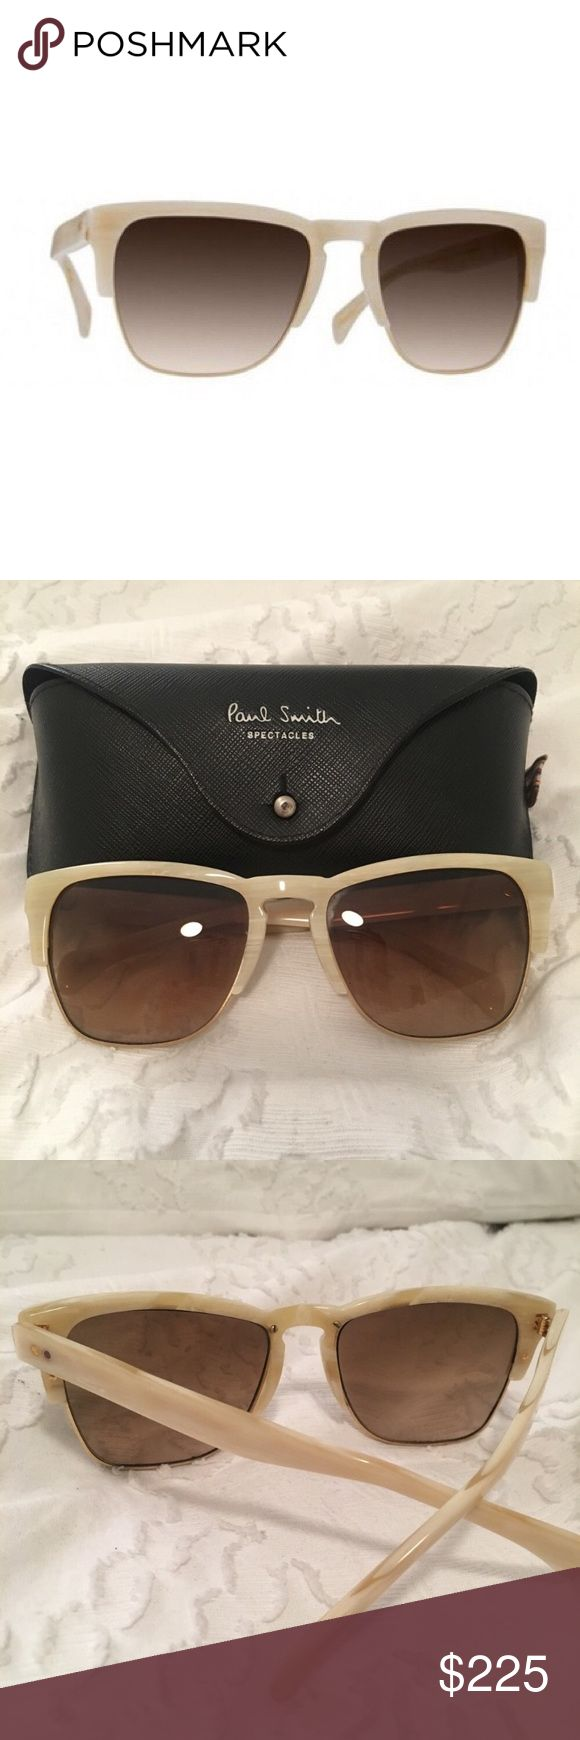 NEW Paul Smith Romiley Sunglasses Paul Smith Sunglasses Romiley Beige Silk/Brushed Gold With Mink Gradient, 100% Authentic, come with Original Case, Cleaning Cloth and Certificate Of Authenticity. Paul Smith Sunglasses Romiley Beige Silk/Brushed Gold With Mink Gradient exudes endurance, allurement, and have a classic style while creating a modern feel. Manufactured in Italy. Size: Eye 56, Bridge 20, Temple 140 Paul Smith Accessories Sunglasses